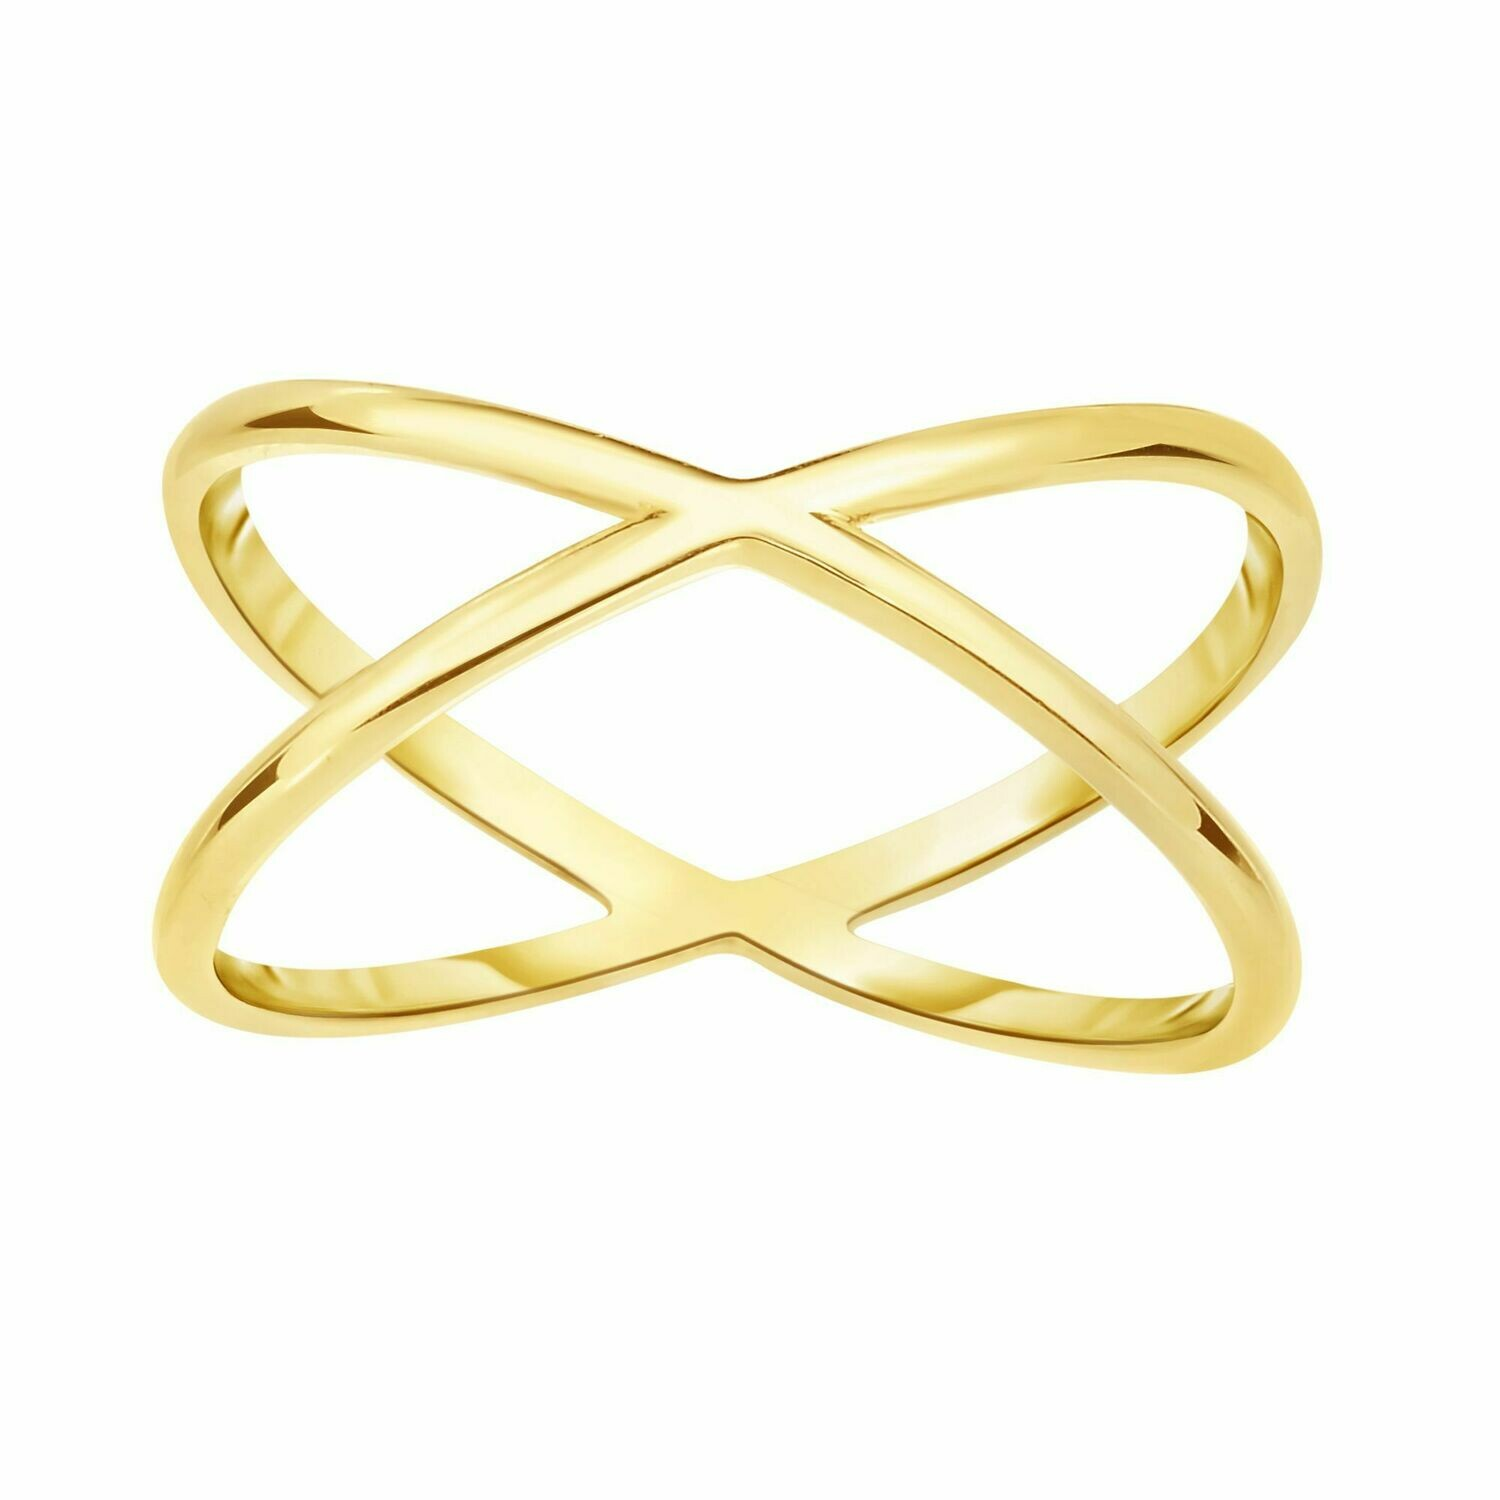 14K Gold Crisscross Ring